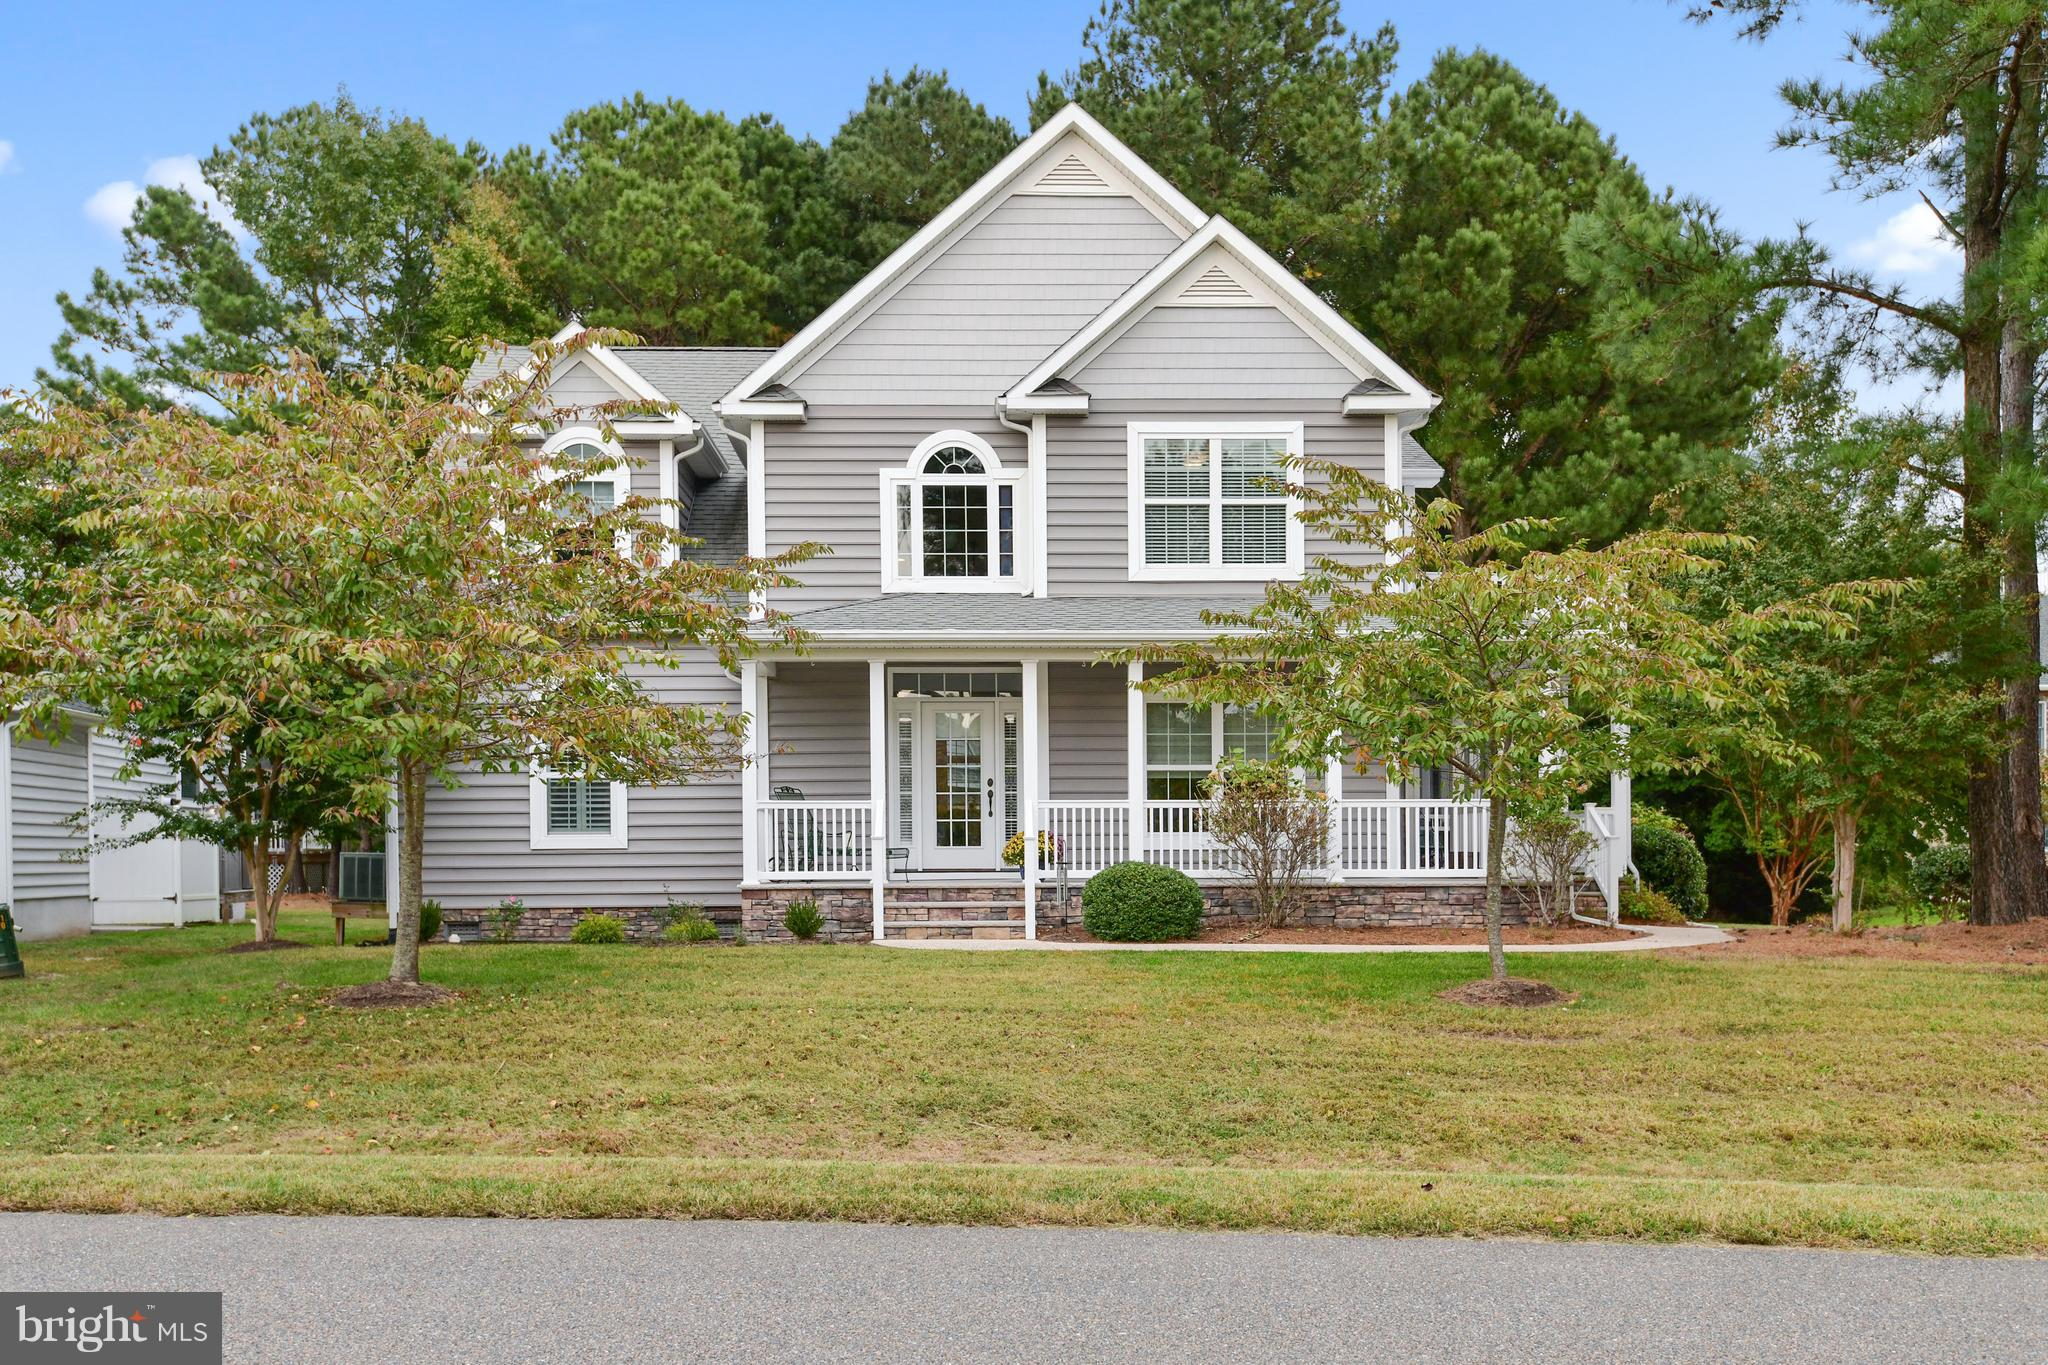 301 SUNRISE COURT, OCEAN PINES, MD 21811